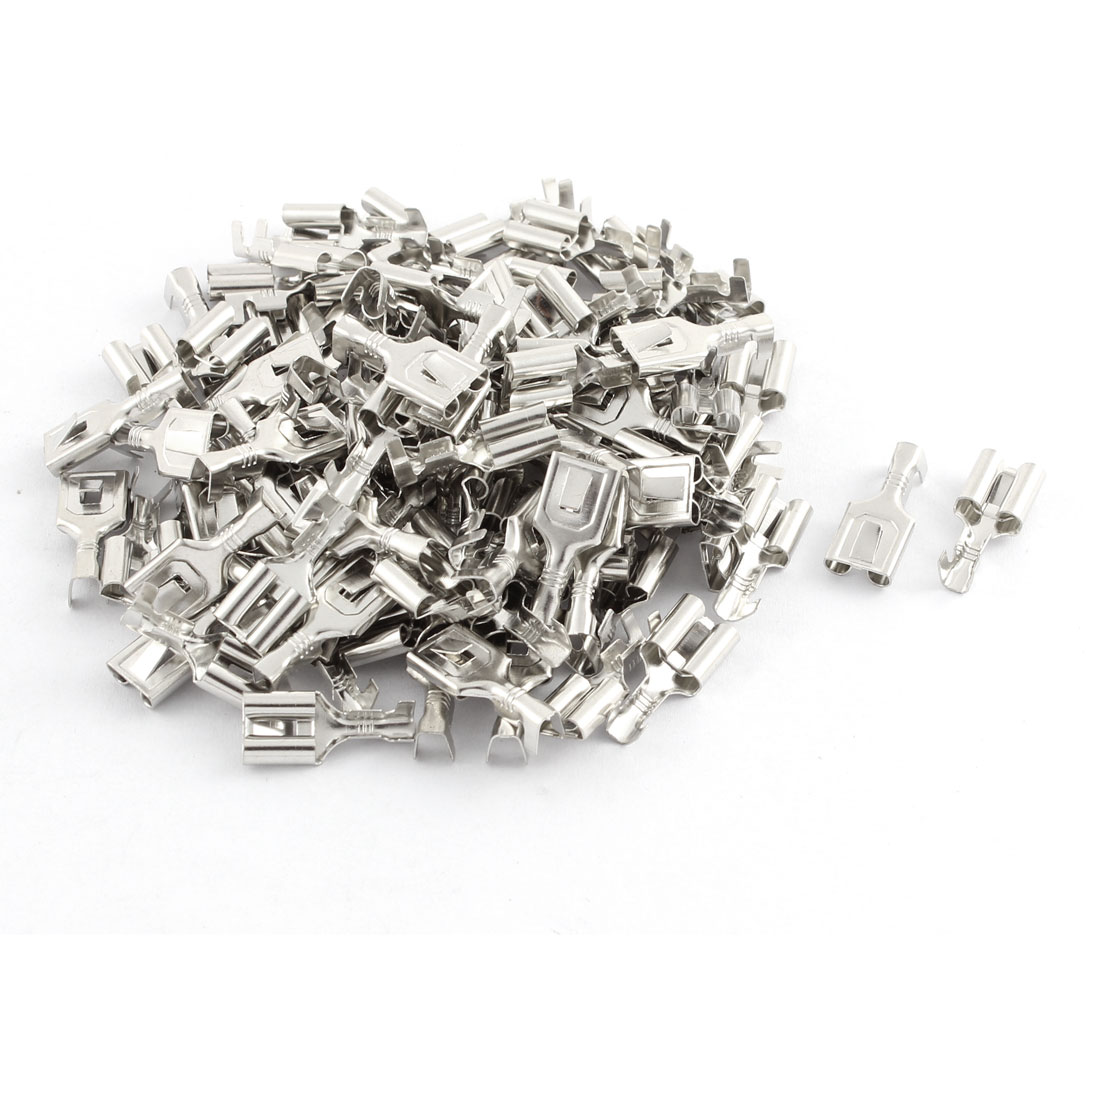 Car Speaker 7.8mm Female Spade Terminal Wire Connector Silver Tone 100 Pcs